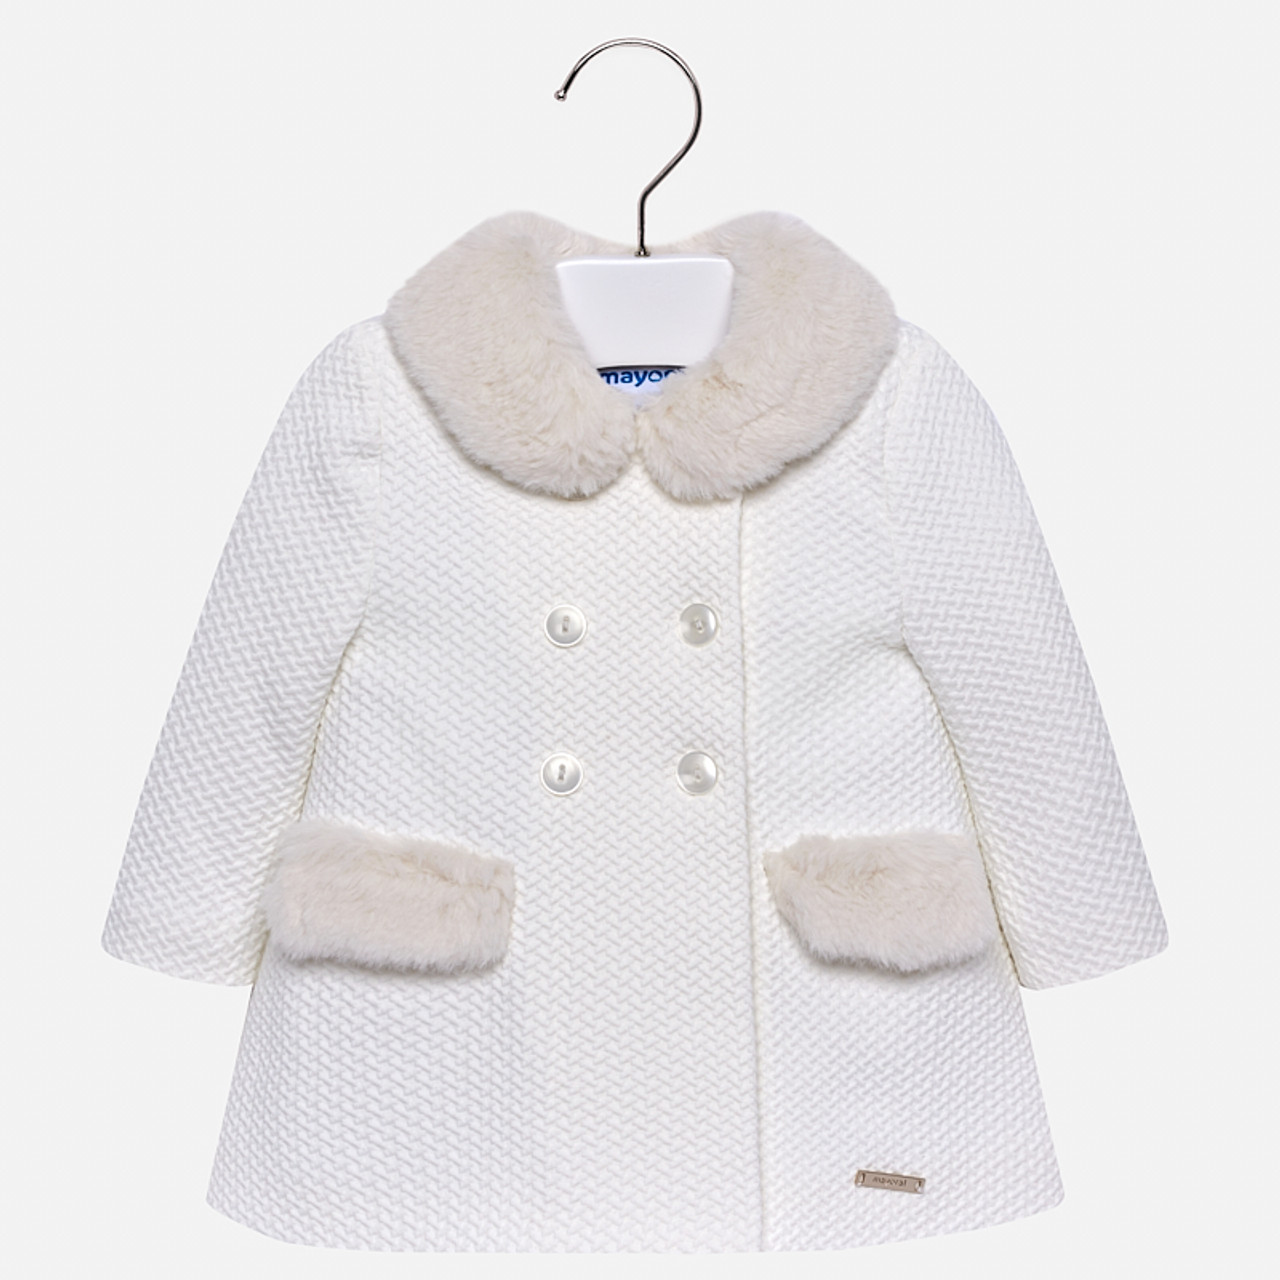 adb7fd101 Mayoral Baby Girls Faux Fur Coat - Off-White - Two Birdees